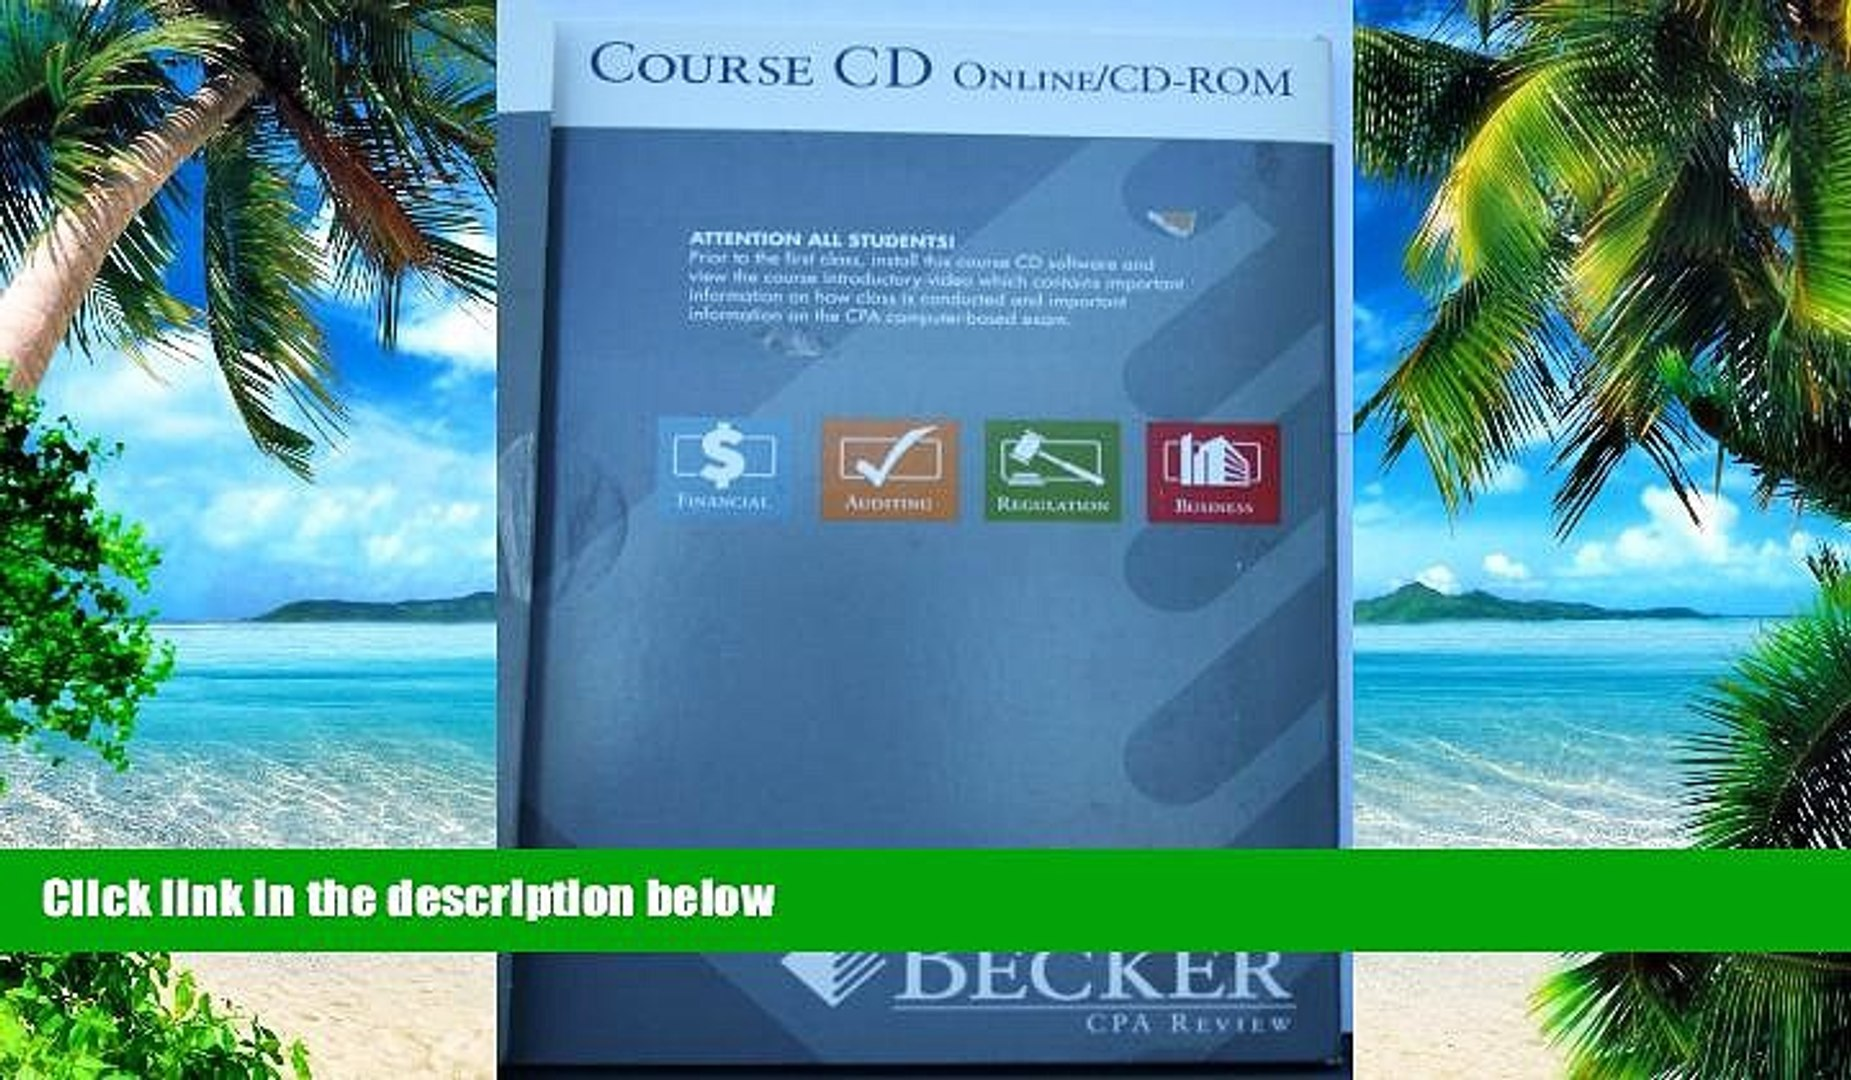 Best Price Becker CPA Review 2006 - Course CD Online/CD-ROM Becker CPA Review 2006 PDF